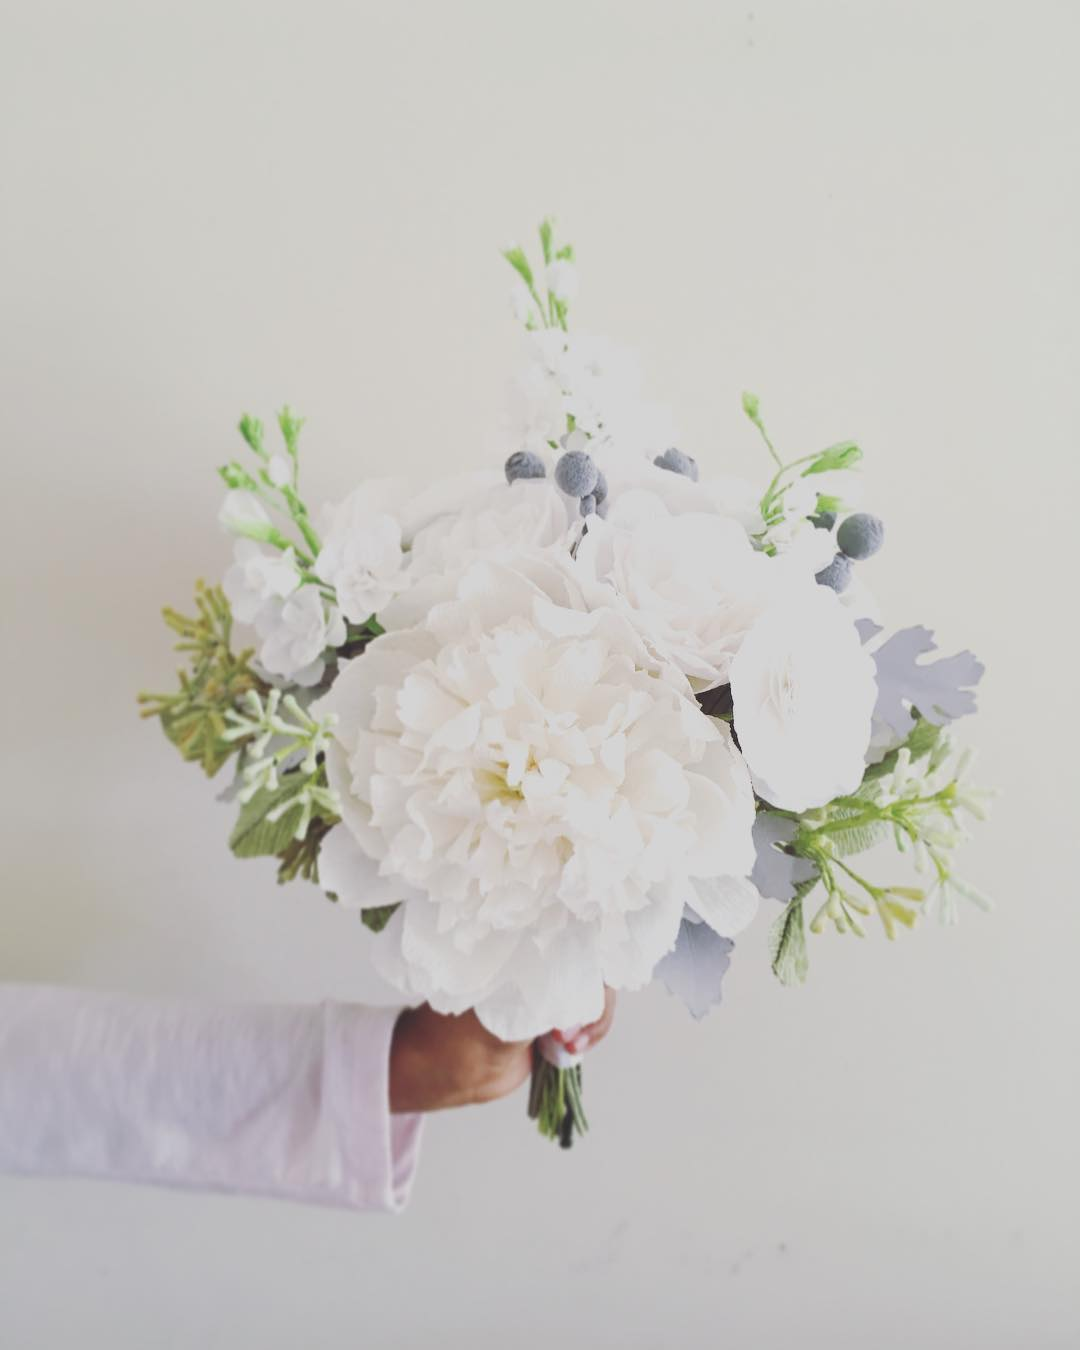 Handmade paper flowers by maria noble paper flowers izmirmasajfo Choice Image